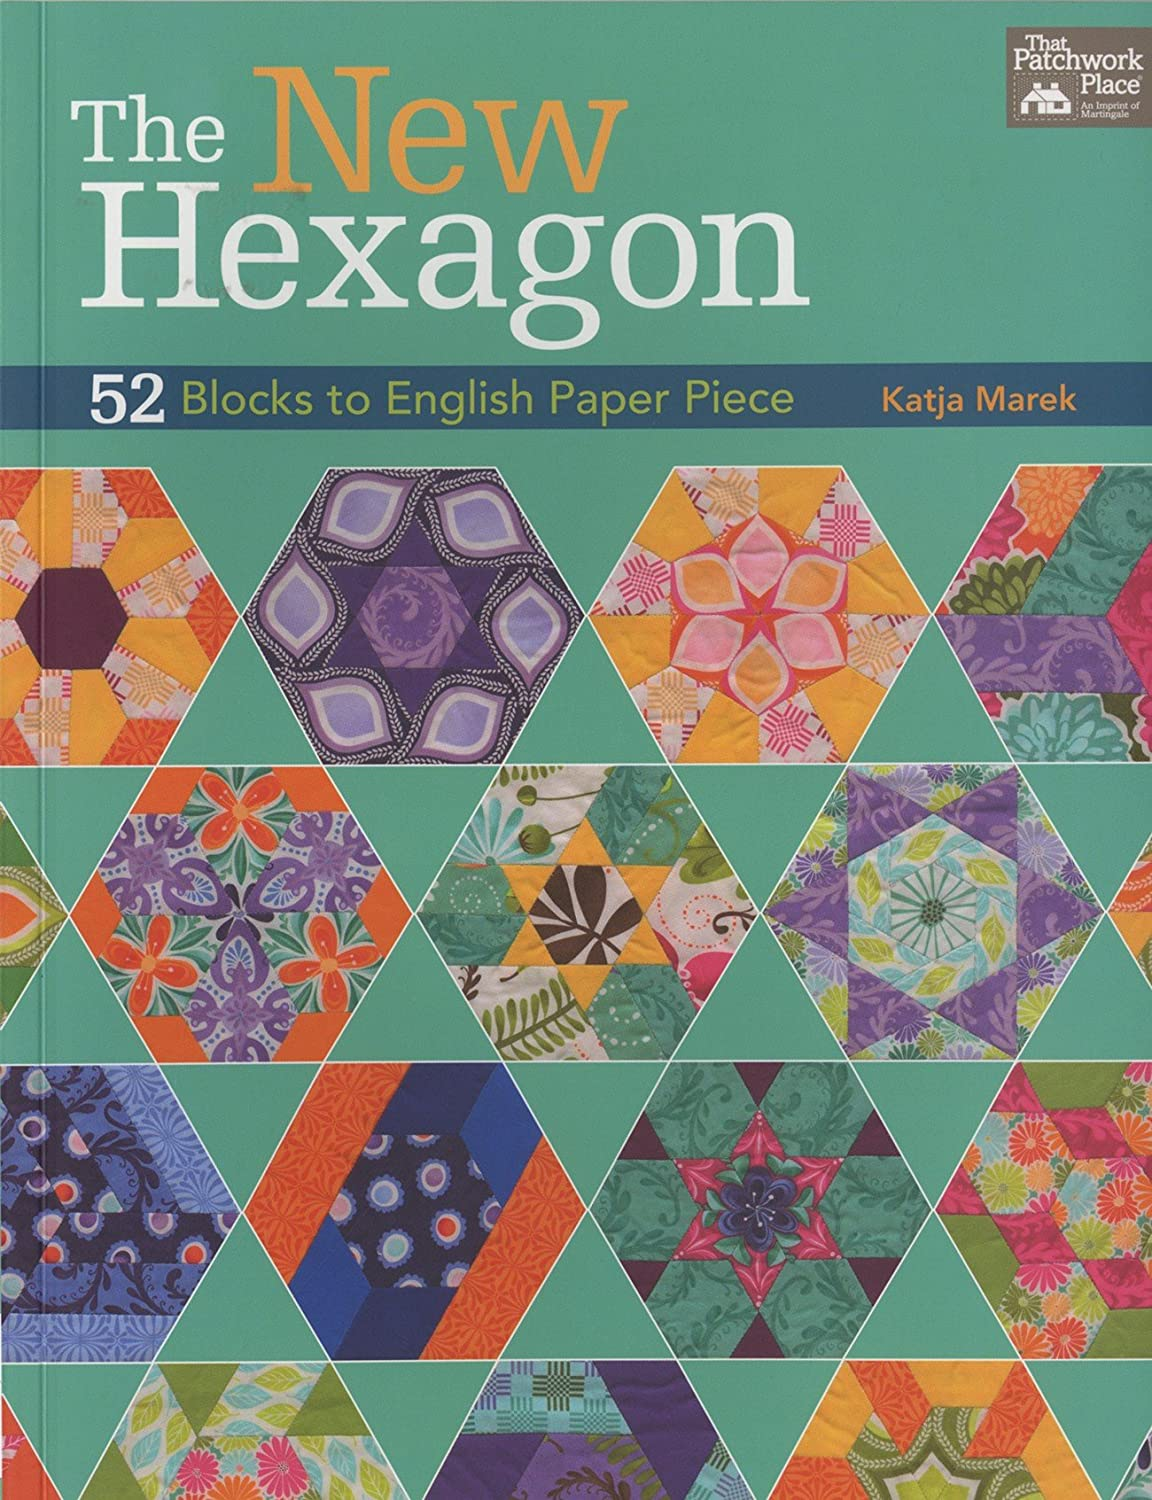 Martingale That Patchwork Place, The New Hexagon